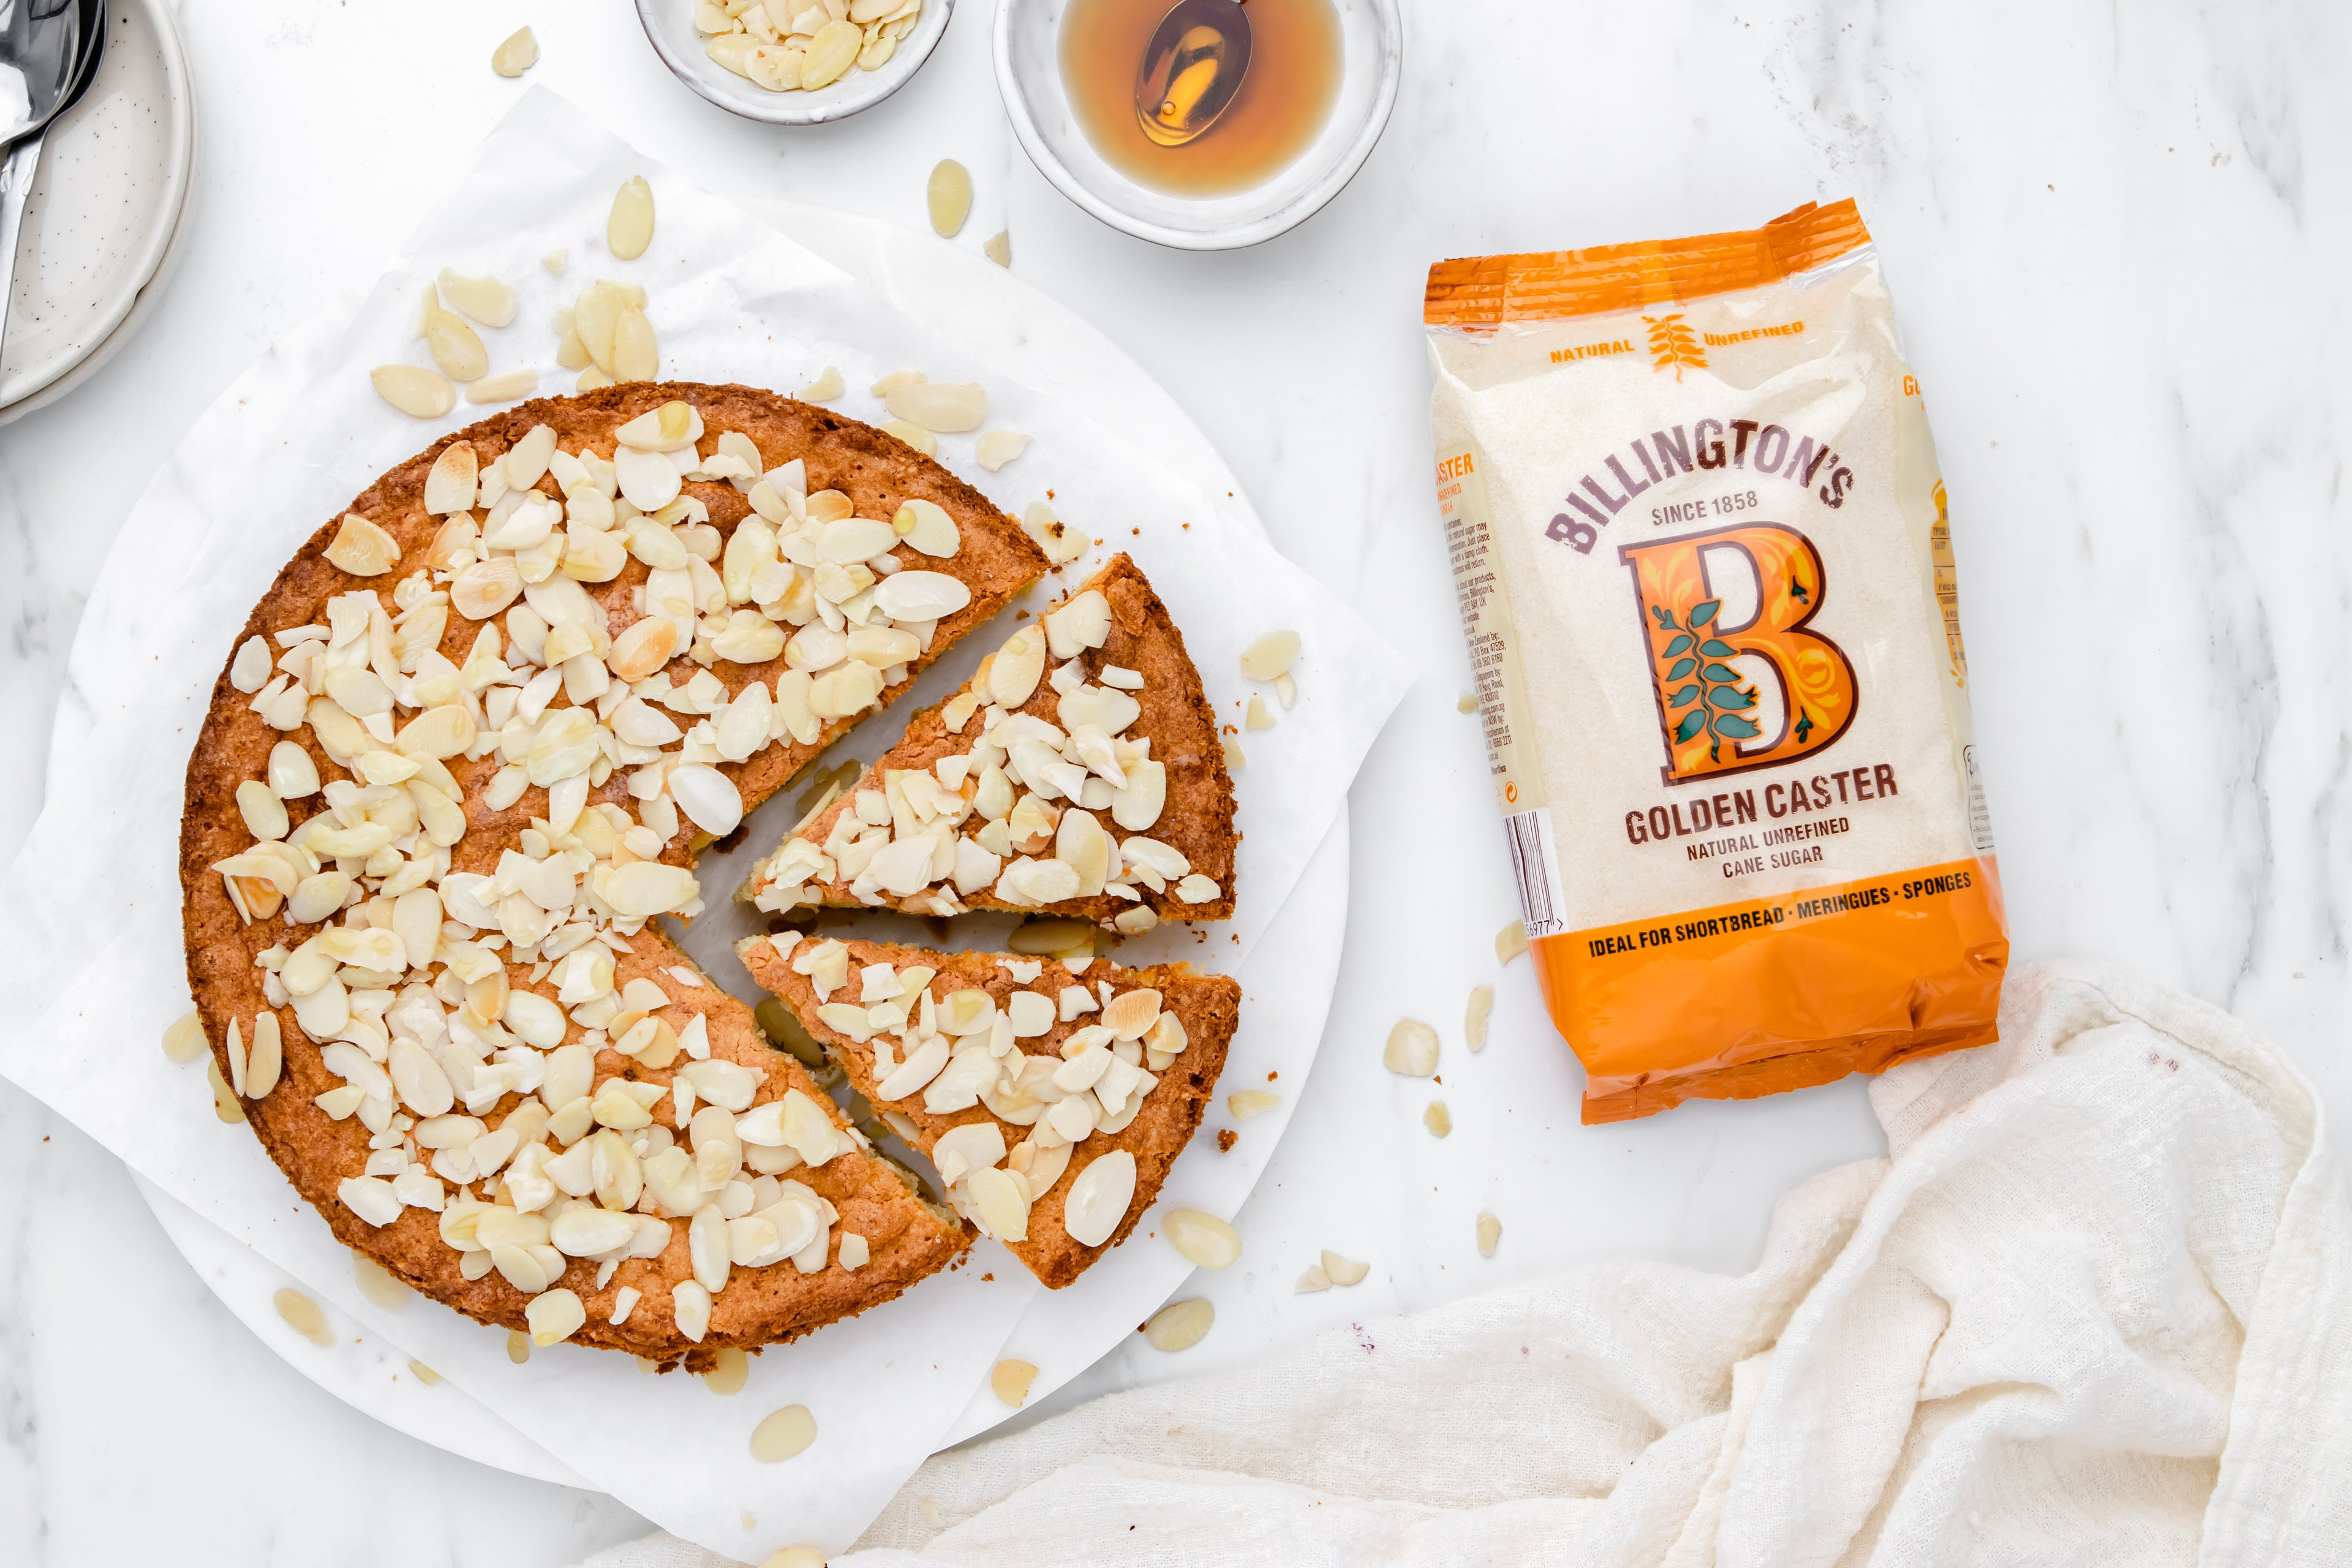 Almond cake with a slice cut out, sprinkled with almonds next to a bag of Billington's Golden Caster sugar